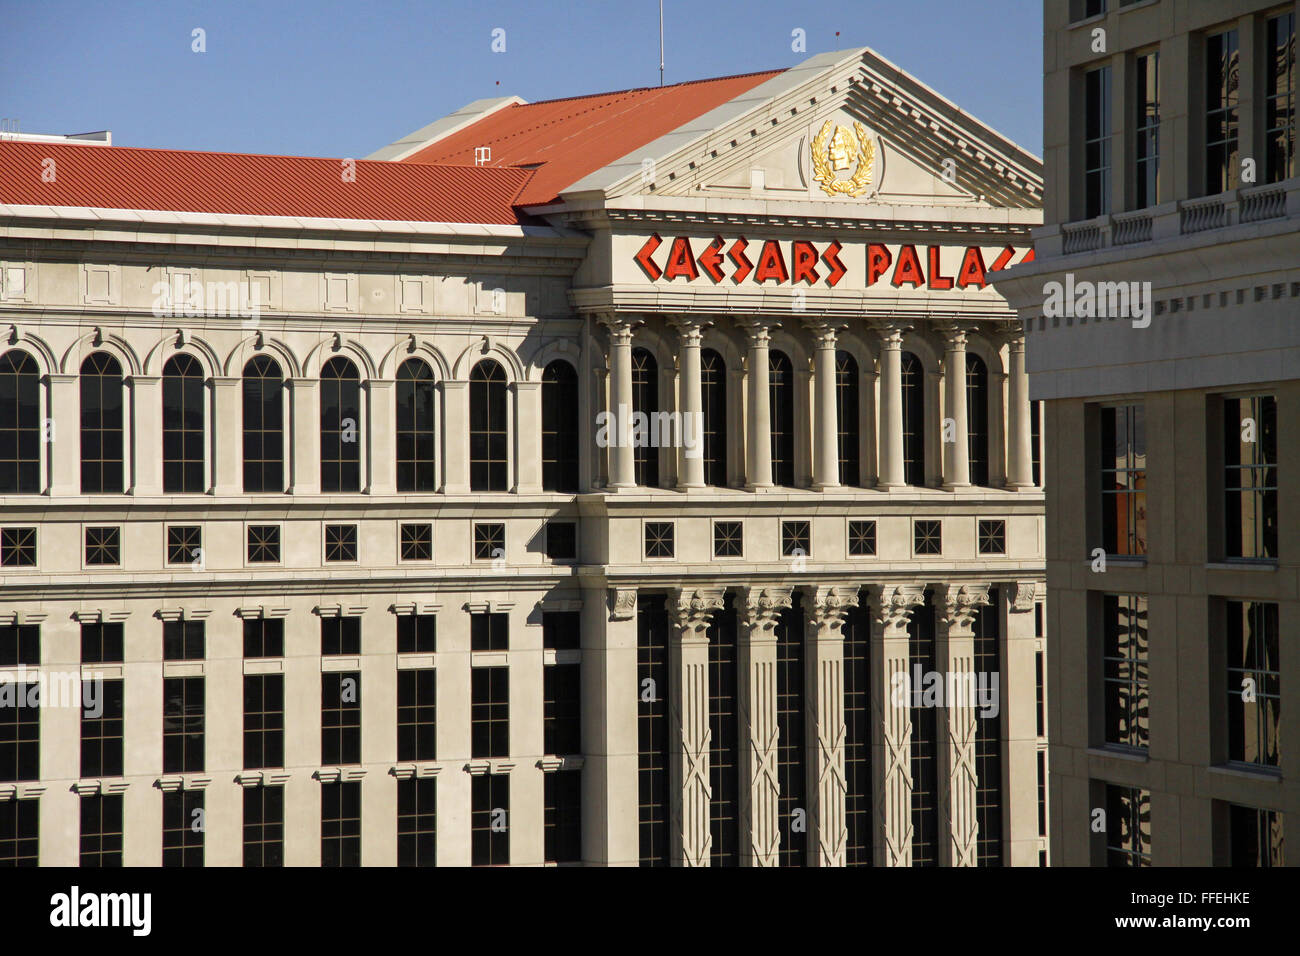 the facade of Caesars Palace Hotel in Las Vegas, Nevada, USA Stock Photo